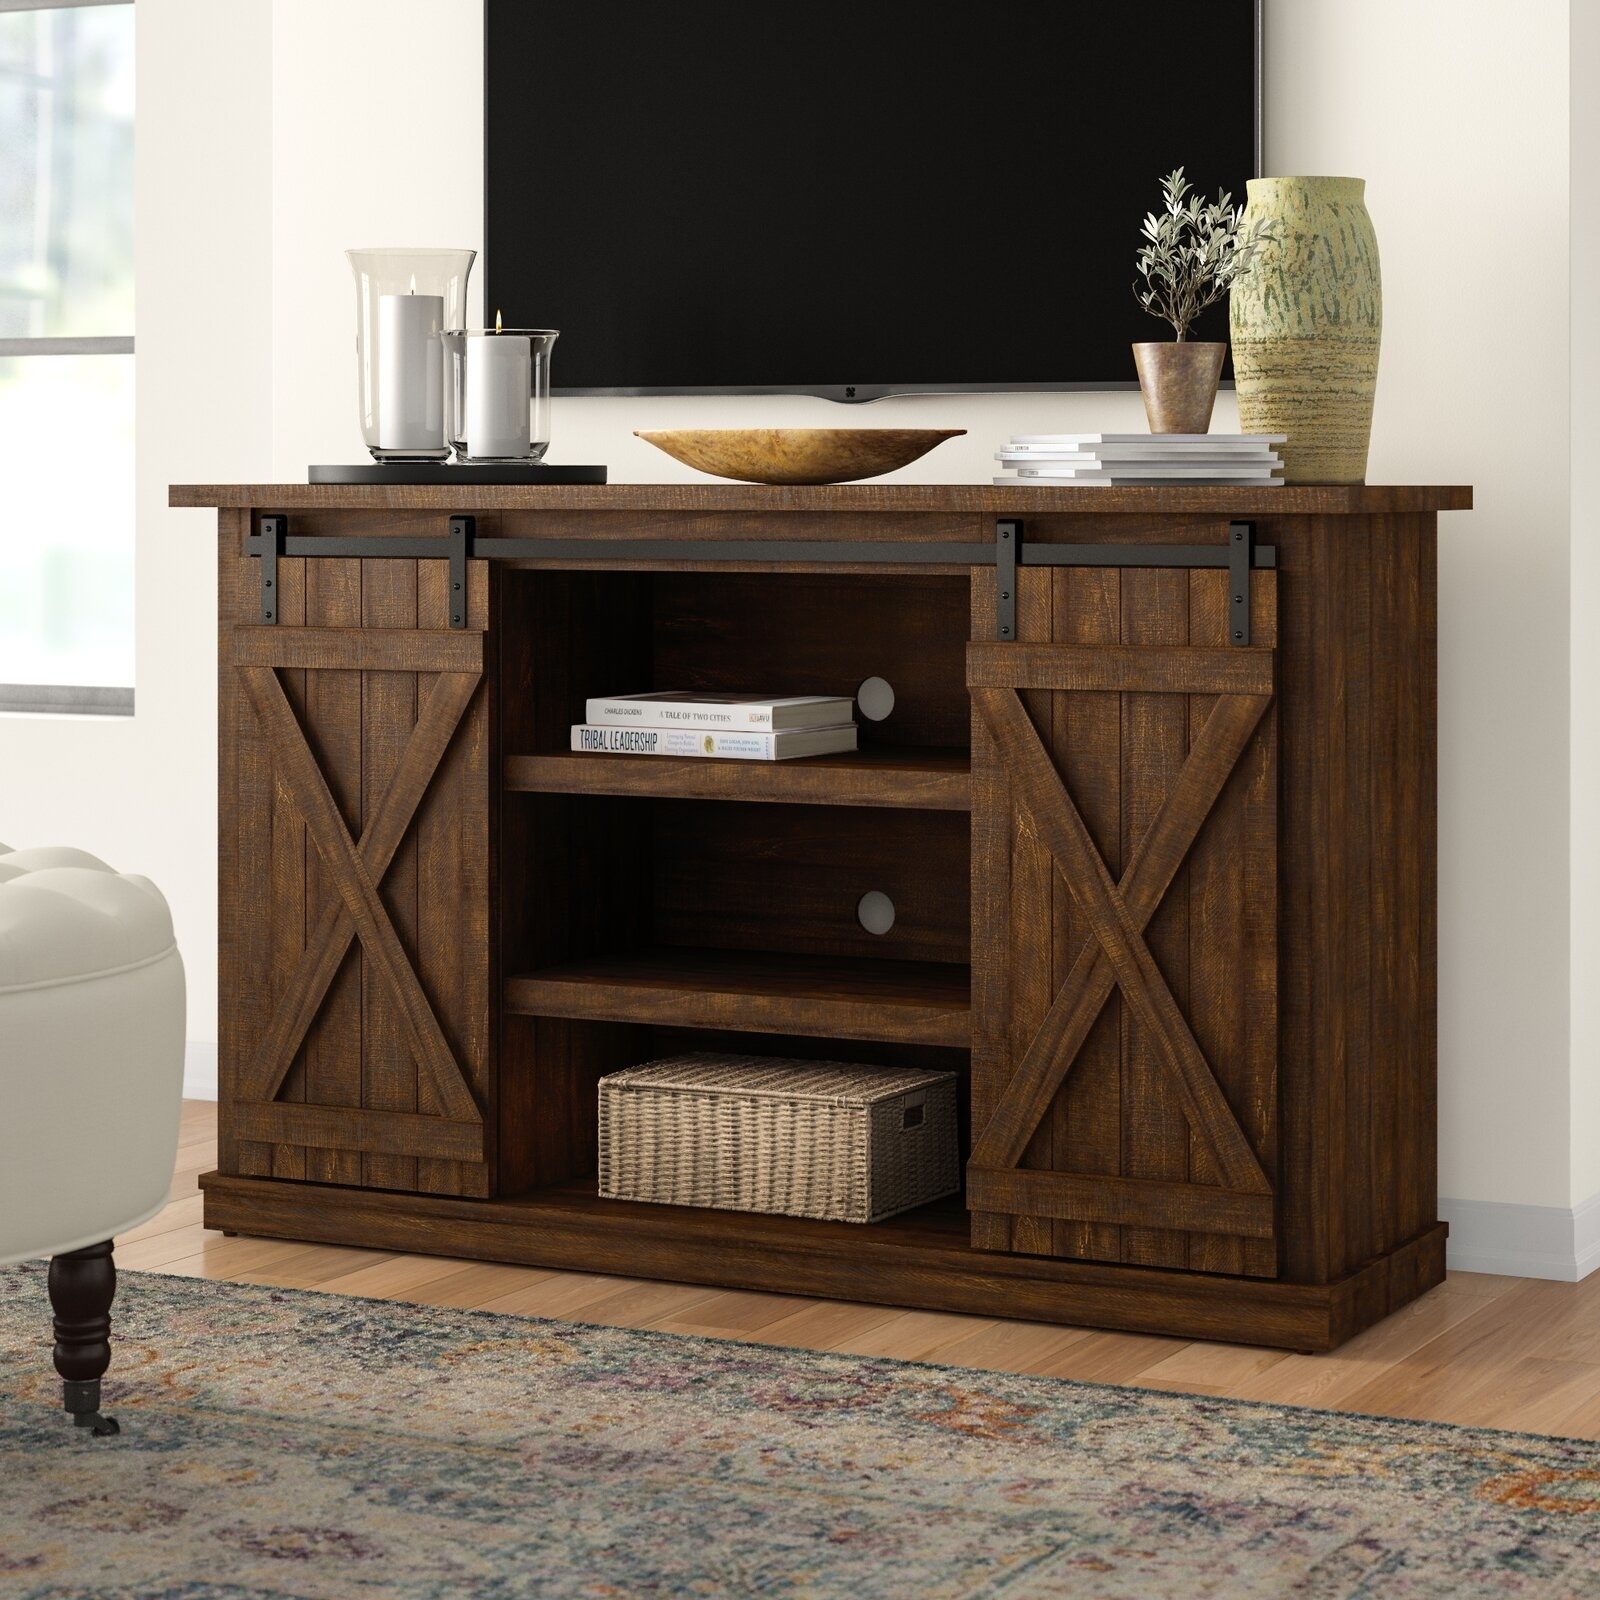 brown wooden tv stand with sliding barn doors